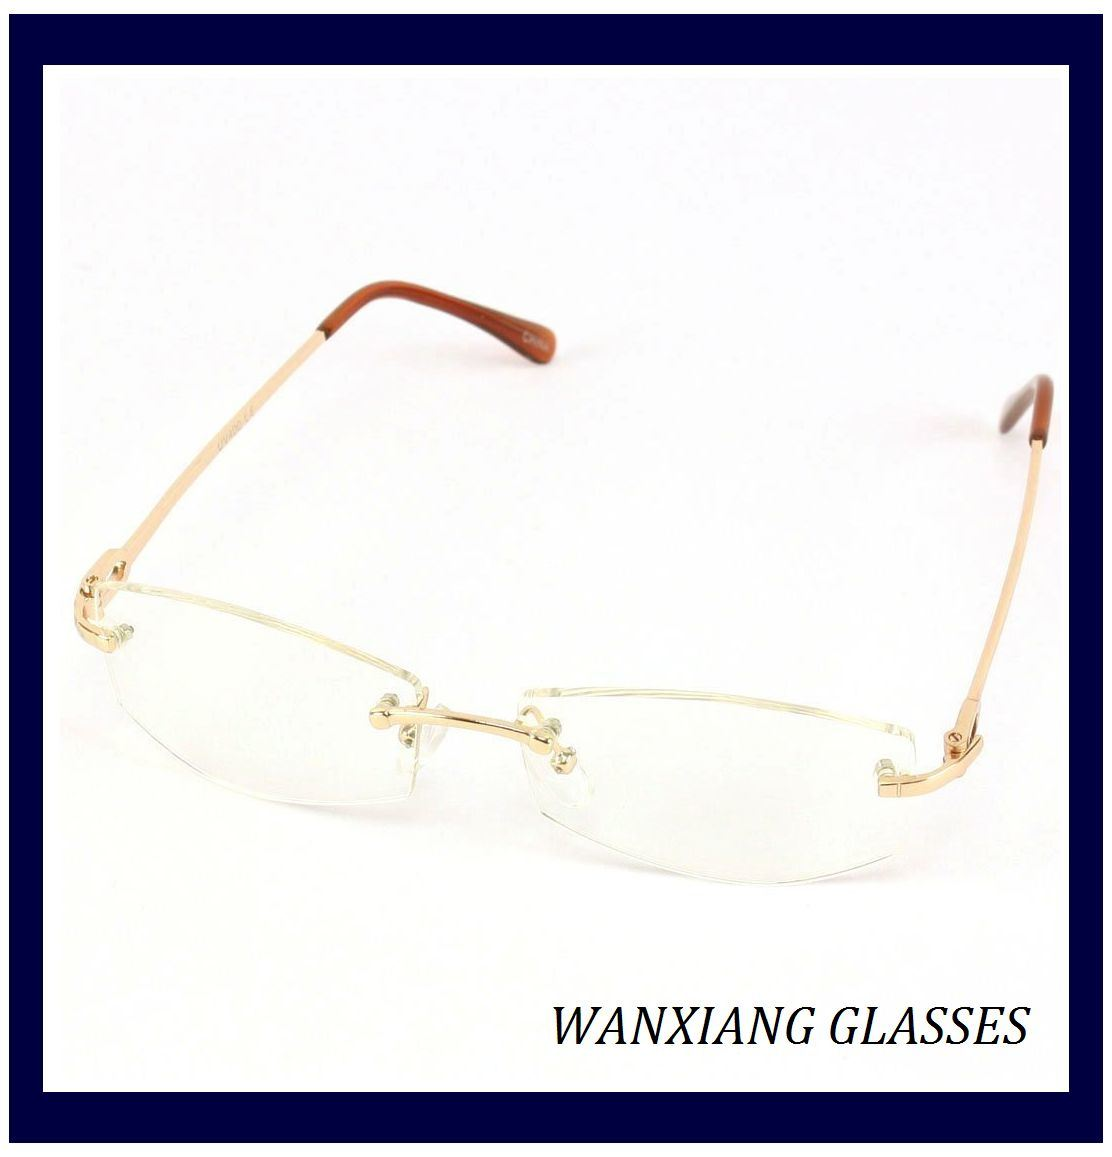 Eyeglass Frames Square : Glasses Frames - Imtopro International Company - page 1.